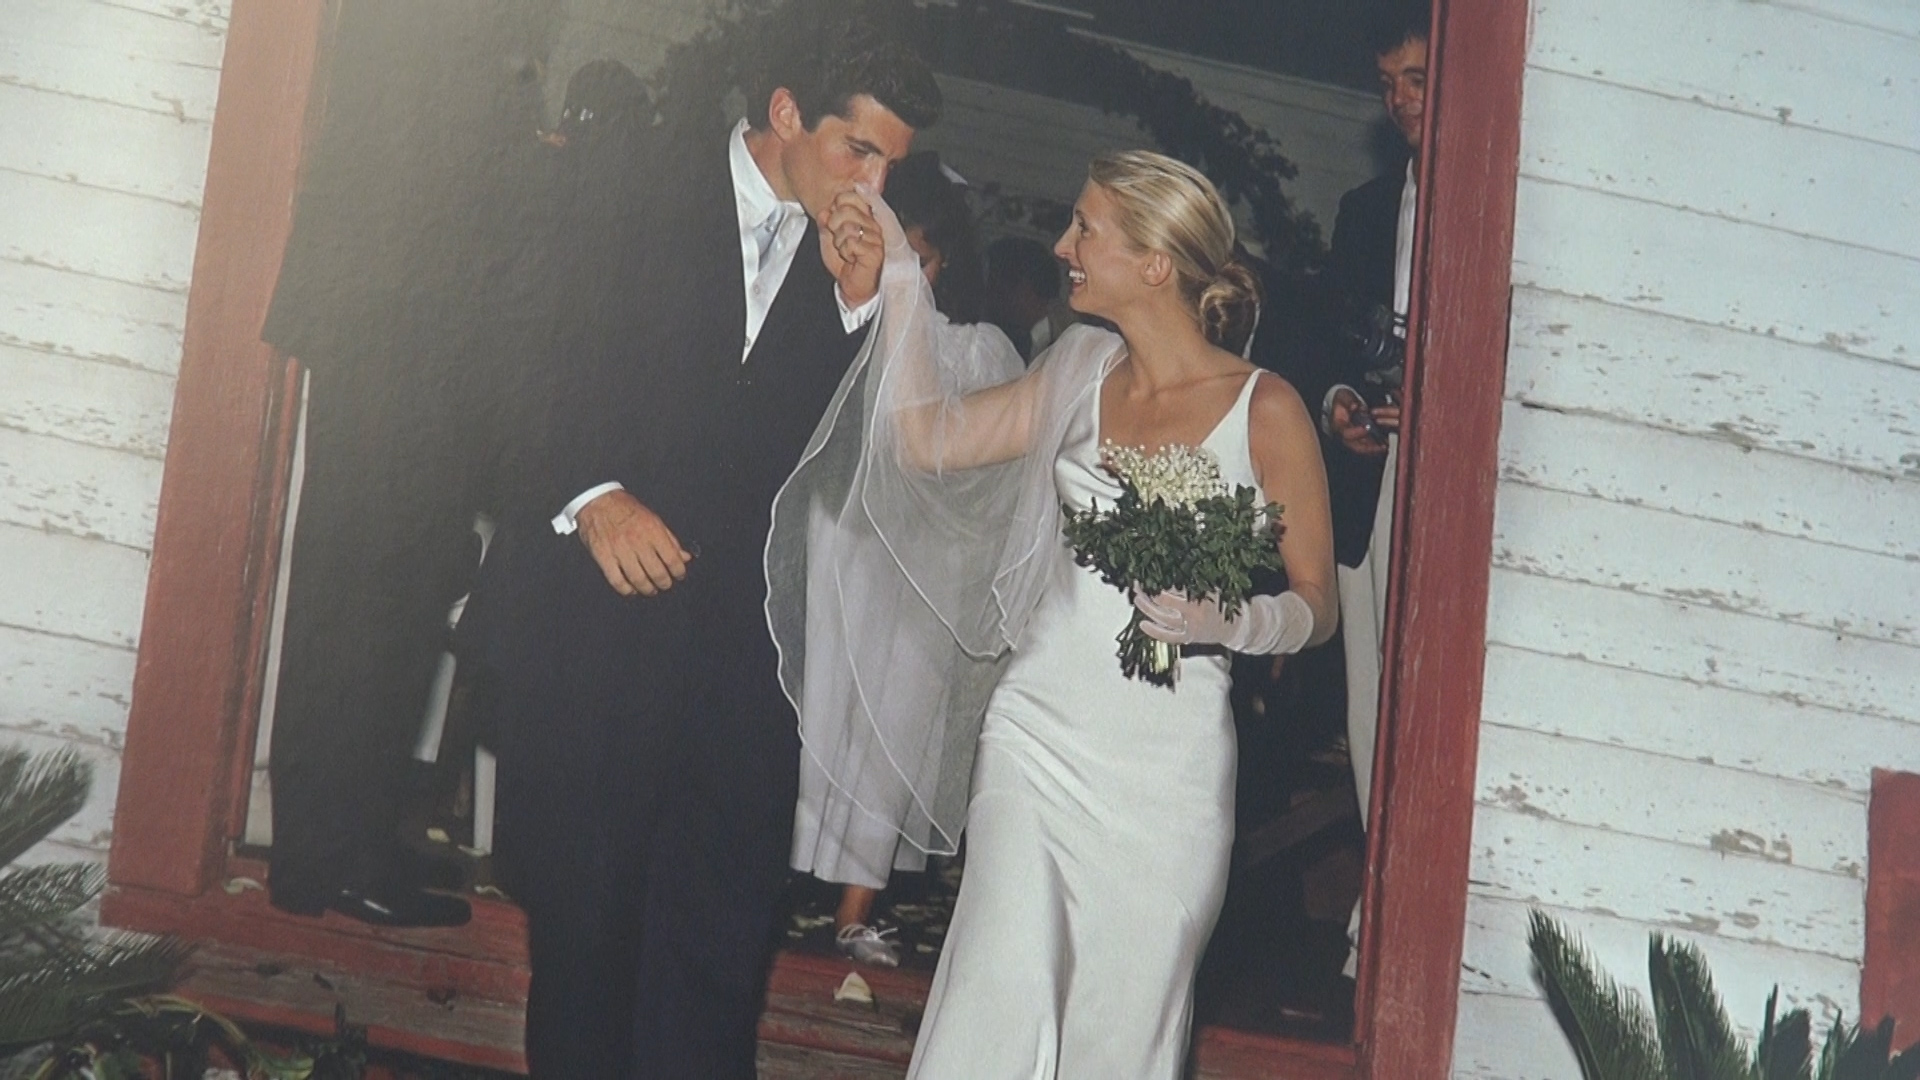 John F. Kennedy Jr. on his wedding day with Carolyn Bessette